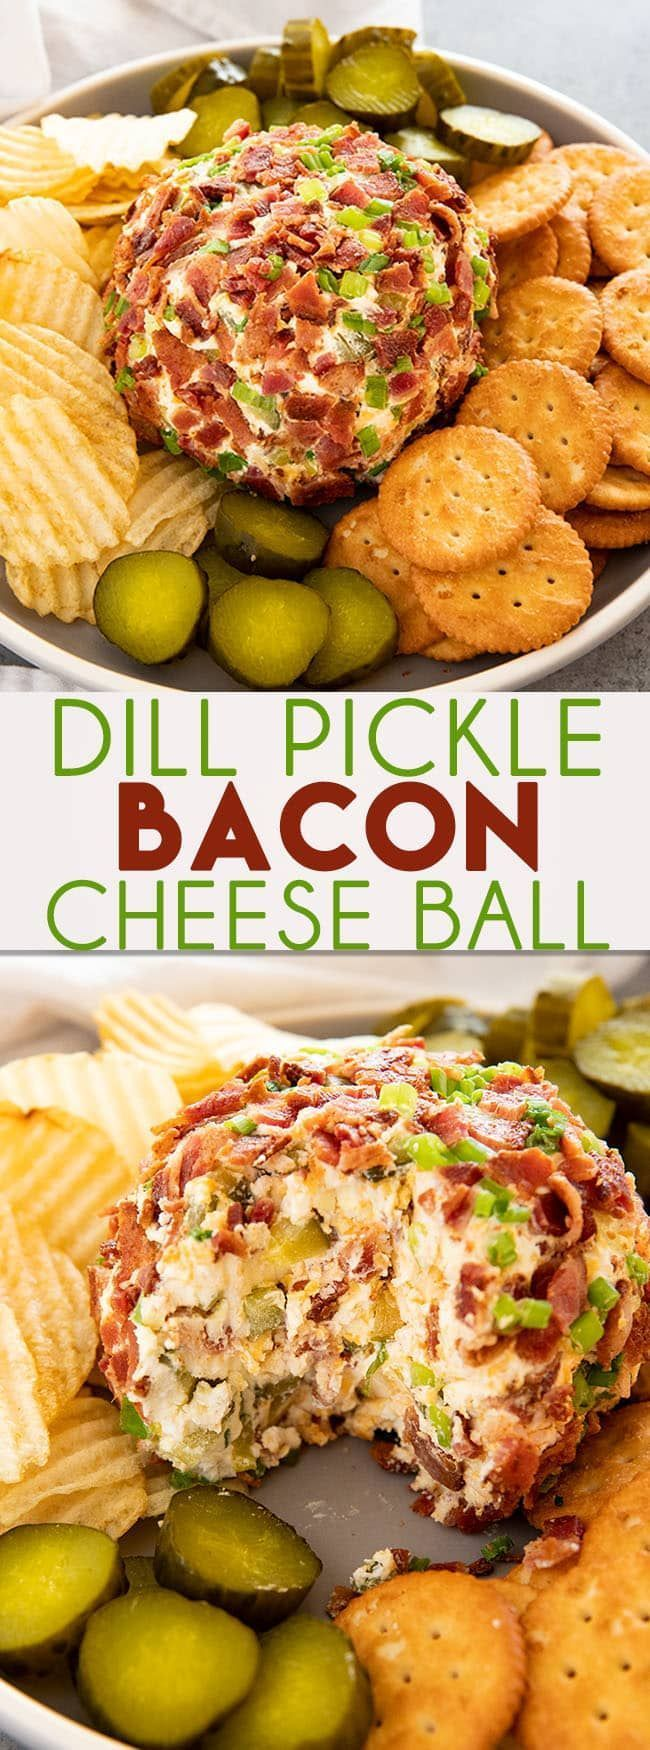 Dill Pickle Bacon Cheese Ball -